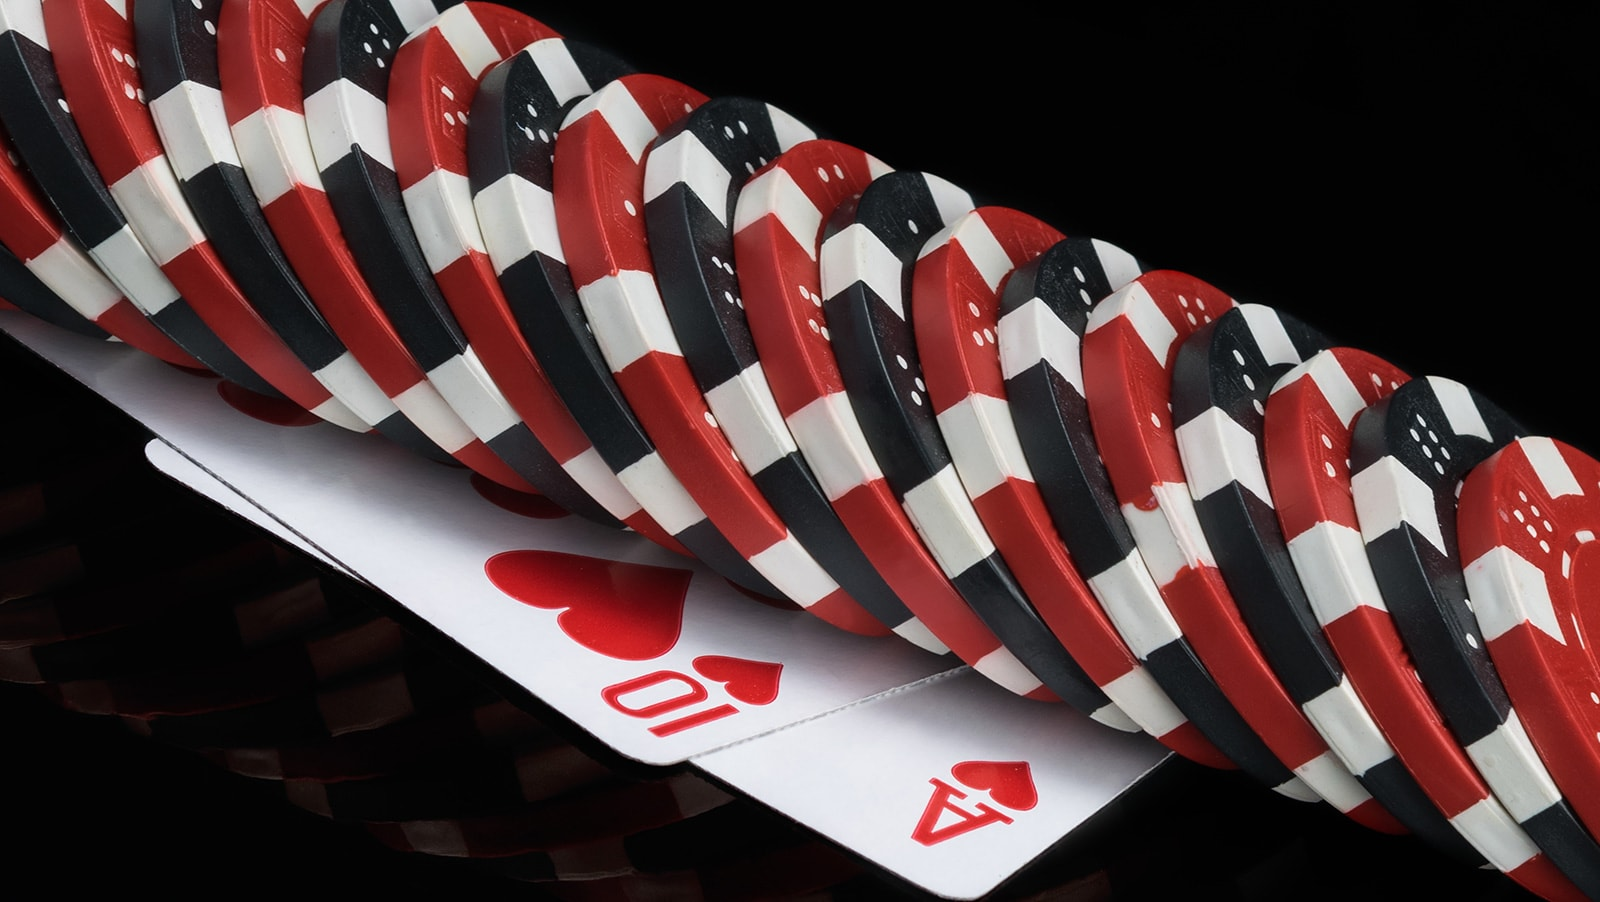 Very Best Online Poker Sites - Guide To Online Poker Rooms